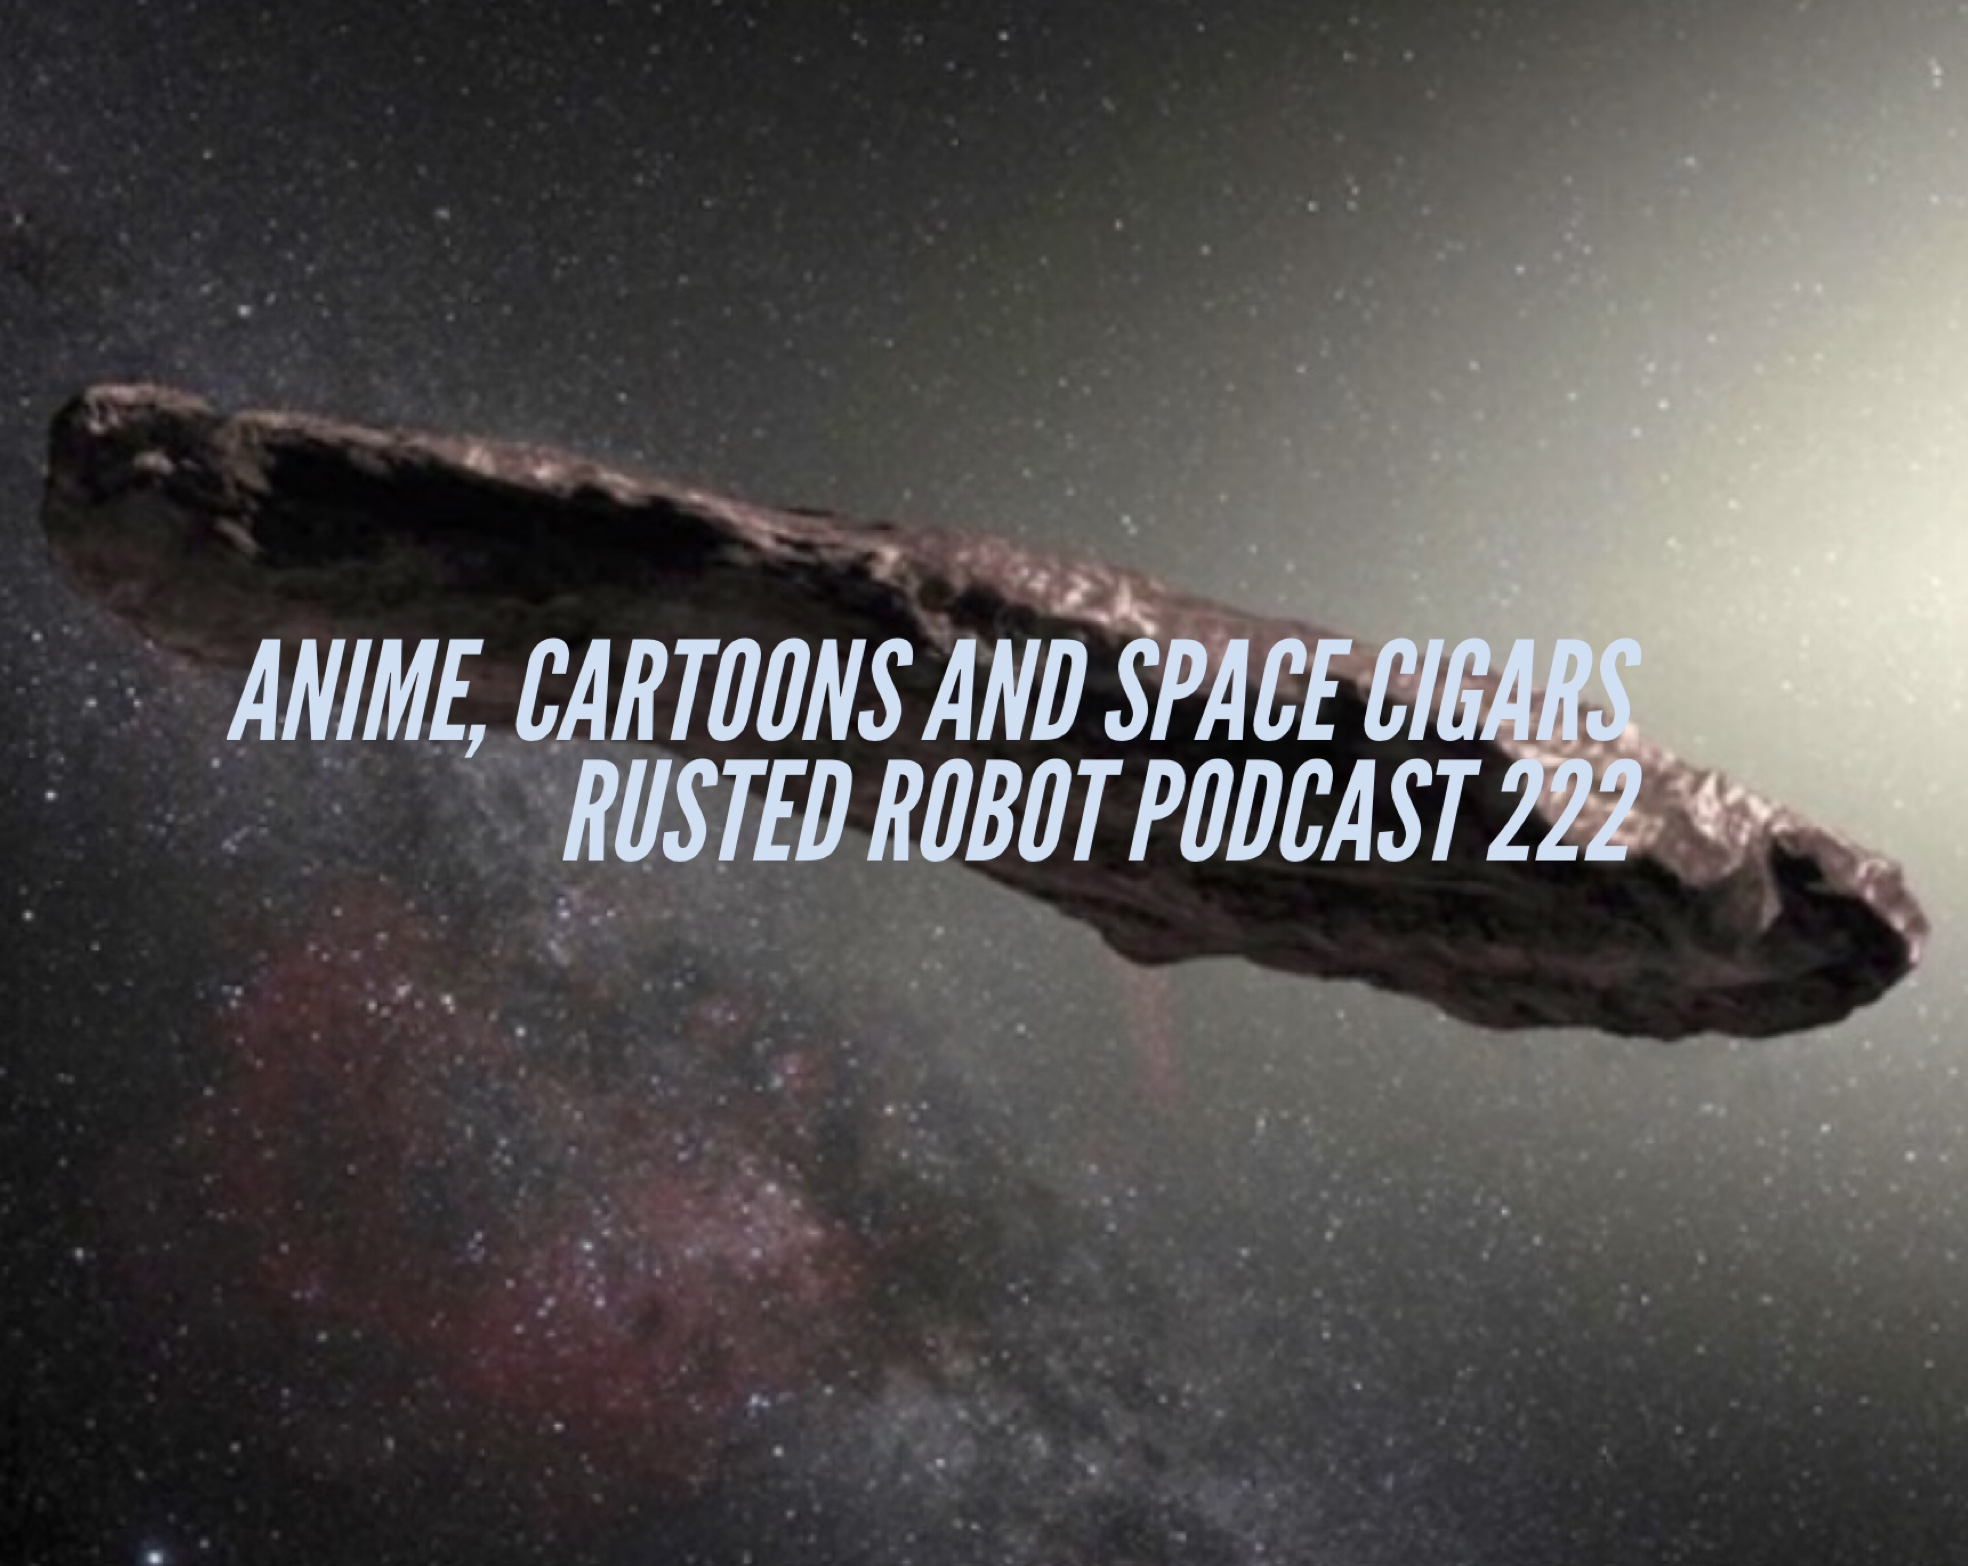 Anime, Cartoons and Space Cigars # 222